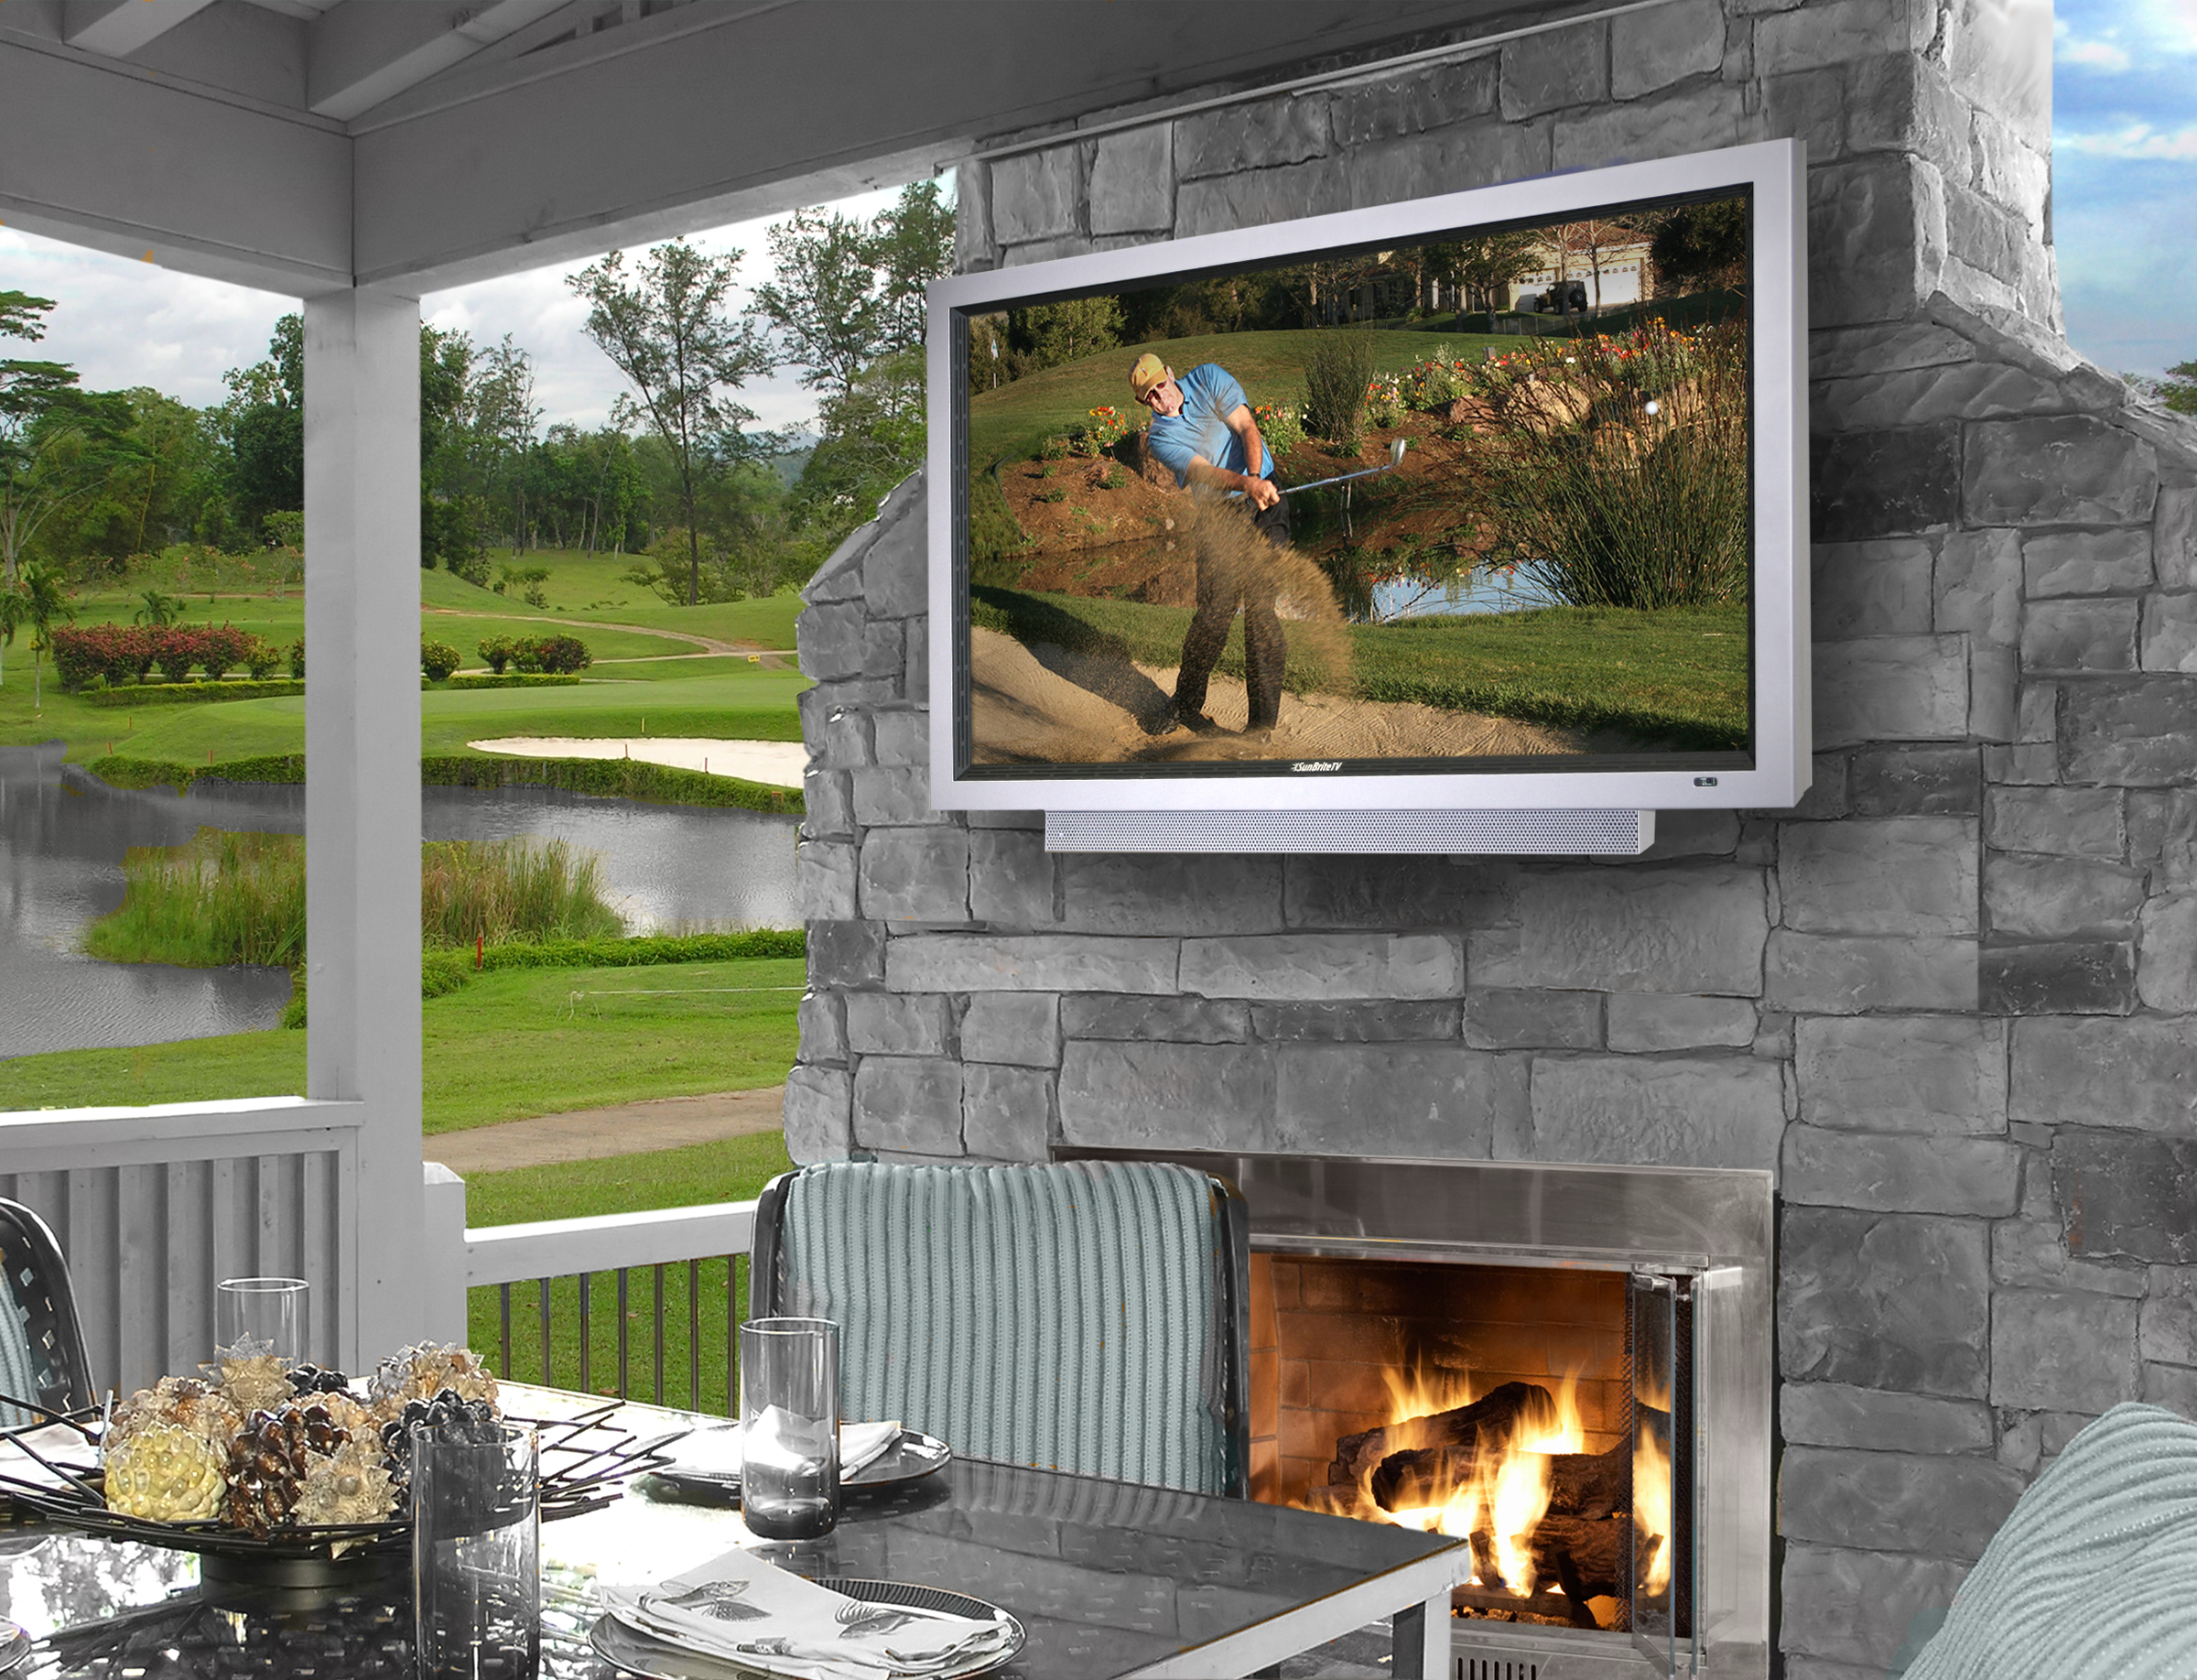 Outdoor tv, http://screamingwifi.com, wifi, wi-fi, internet service, Home audio system, multi-room music system, sonos, casatunes, home speakers, house speakers, house sound system, http://automated-lifestyles.com, automated lifestyles, automated lifestyles Moscow pa, automated lifestyles Pennsylvania, home automation, home monitoring, automated home, automatic home, smart home, automatic window blinds, automatic window shades, surveillance camera, home security, business security, office security system, security system, security camera, home theater, home theater design, home theatre, home network, home control, control home ipad, control home iphone, home speakers, Lutron lights, Lutron lighting, Lighting control, automatic lighting, Multi-room music, Whole house music, Speakers, Audio visual, room music, Meeting room av, Meeting room audio visual, meeting room projector, meeting room screen, office projector, conference room, boardroom, automated meeting room, automatic meeting room, Window candles